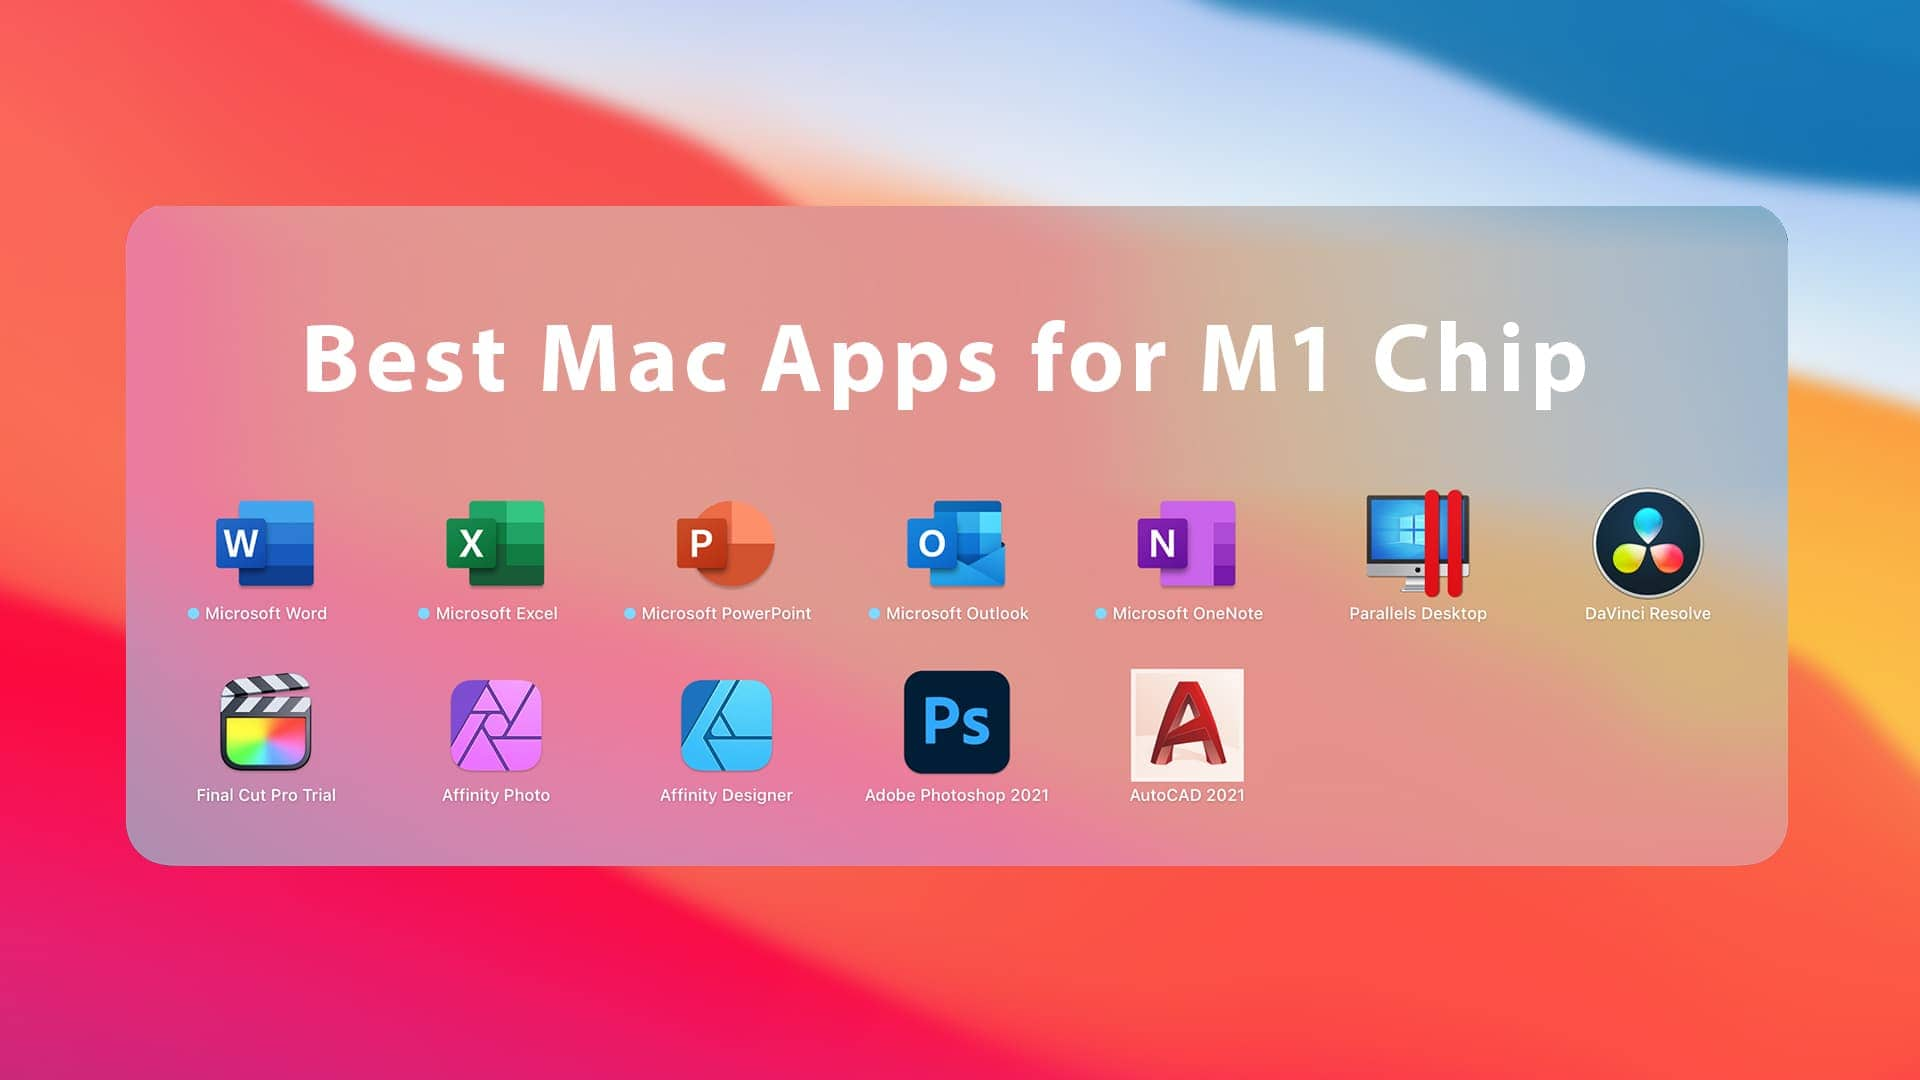 Best Mac Apps for M1 Chip